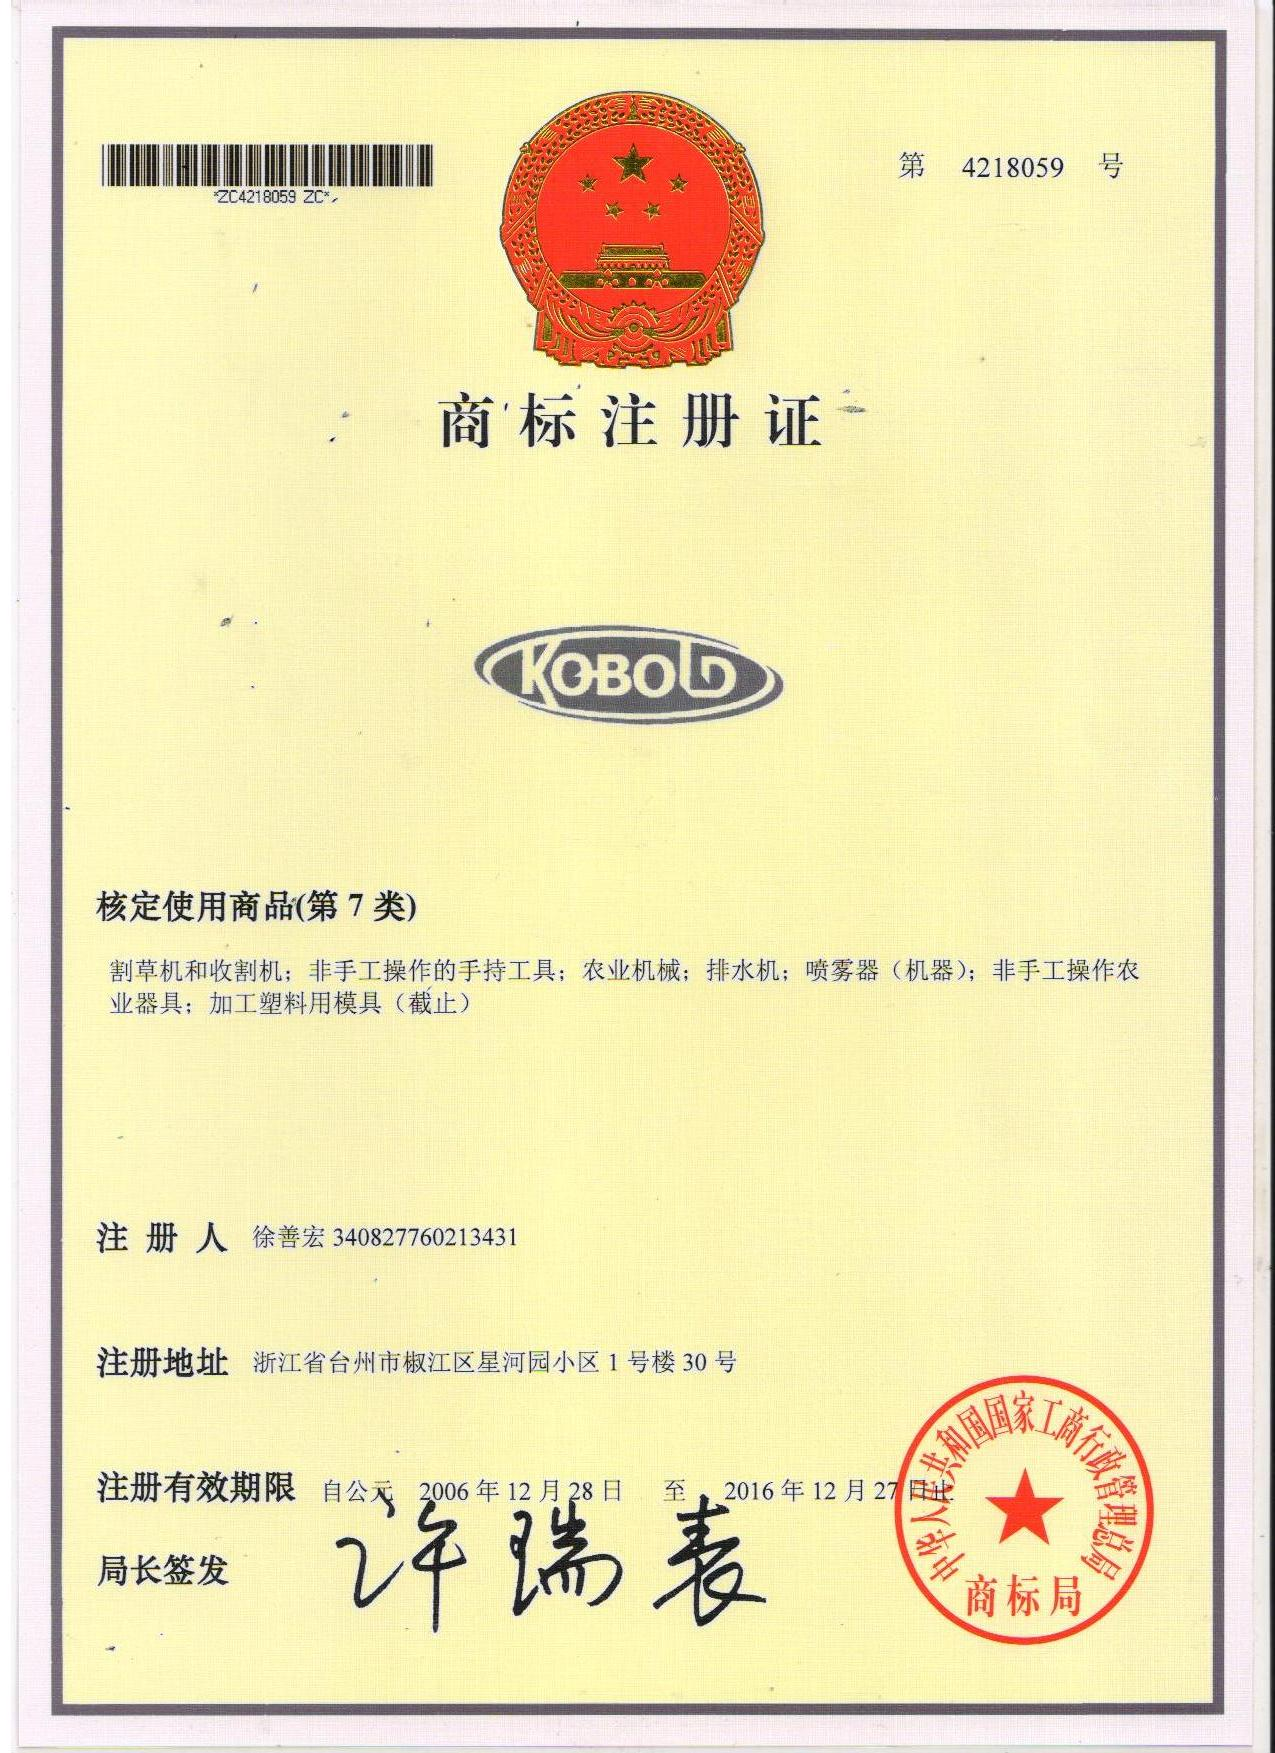 KOBOLD brand certification